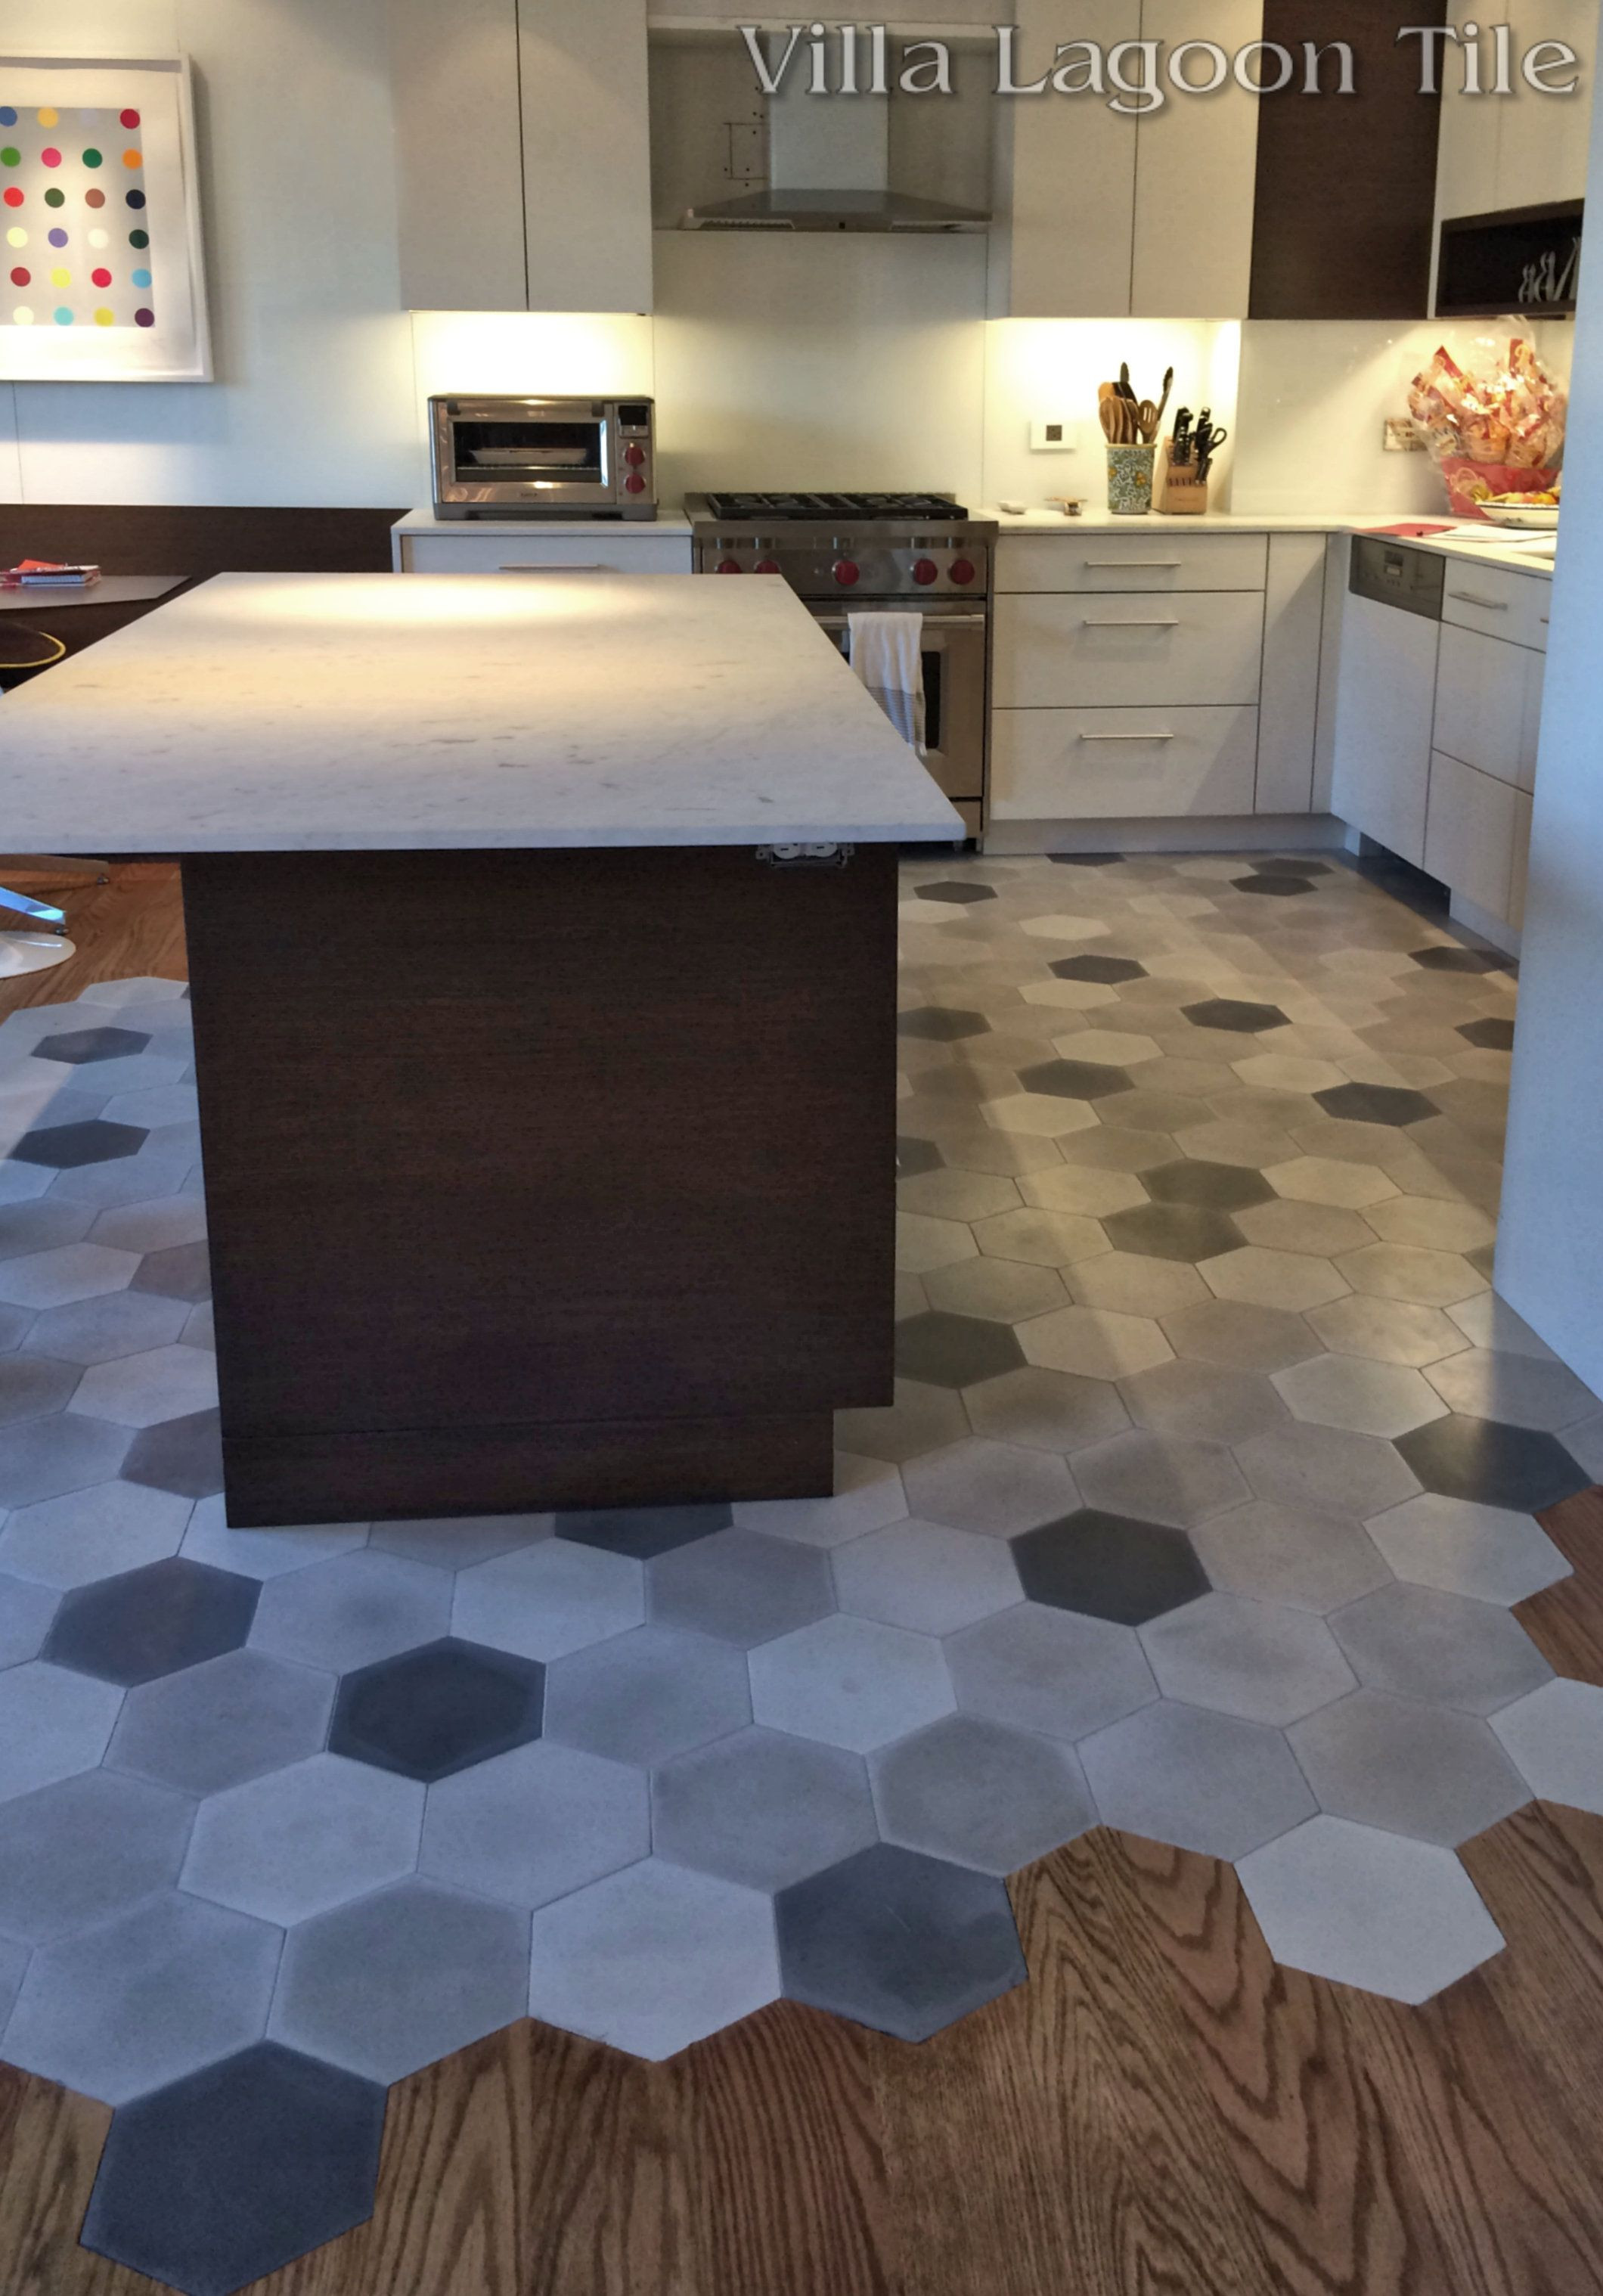 Hardwood Floor Cleaning Nyc Of This Beautiful New York City Installation Flows Hardwood Floors Into within This Beautiful New York City Installation Flows Hardwood Floors Into Our Mixed Gray Hex Cement Tile